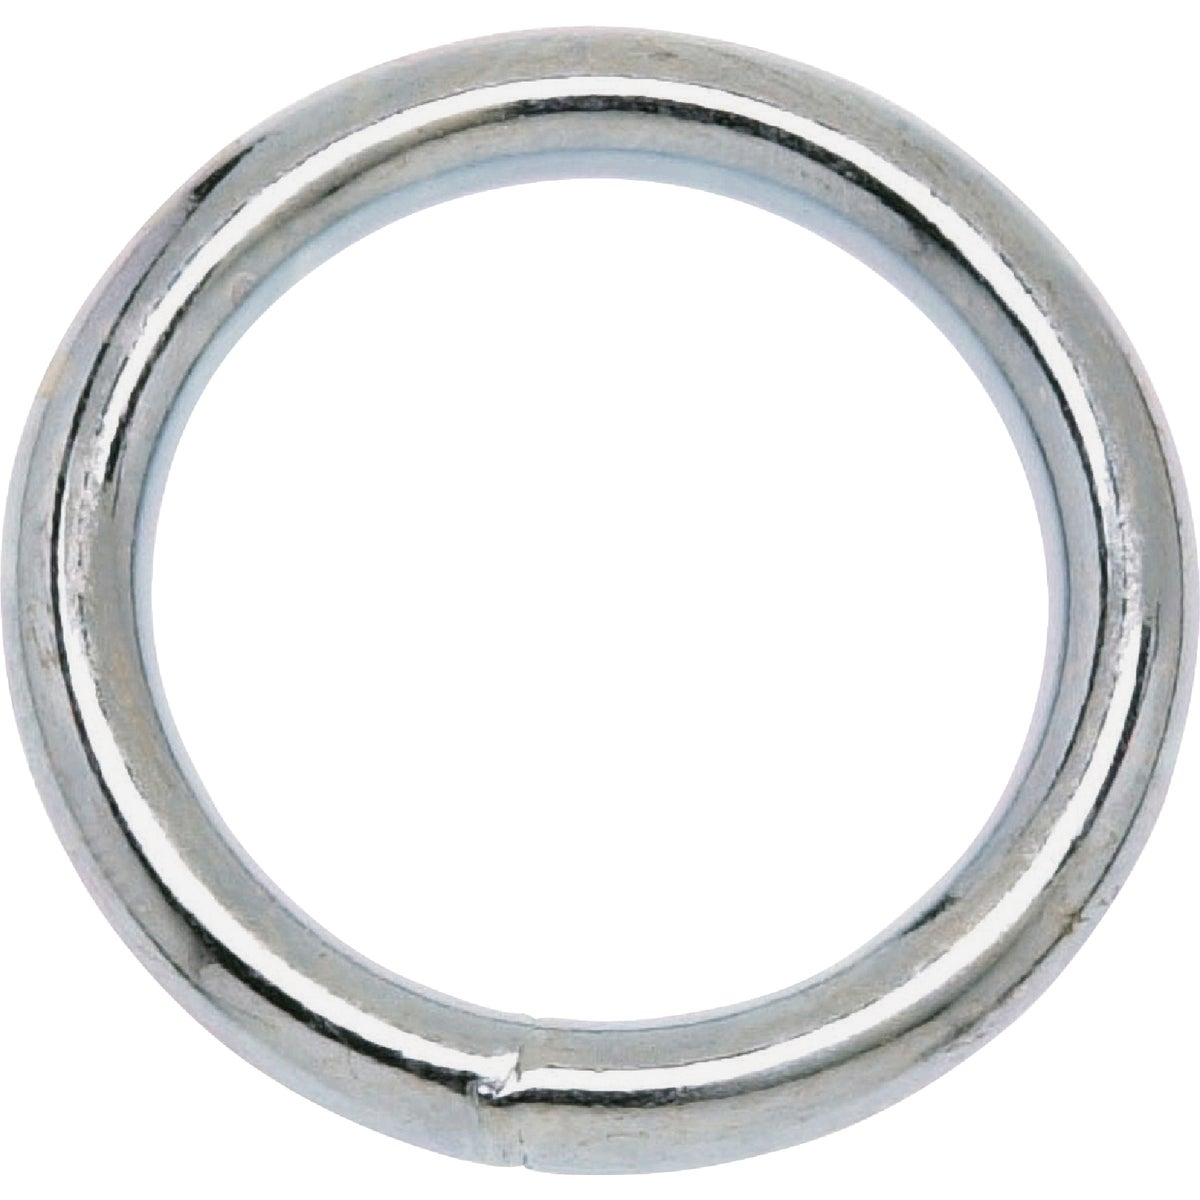 "2"" #7 BNZ RND RING - T7662154 by Cooper Campbell Apex"